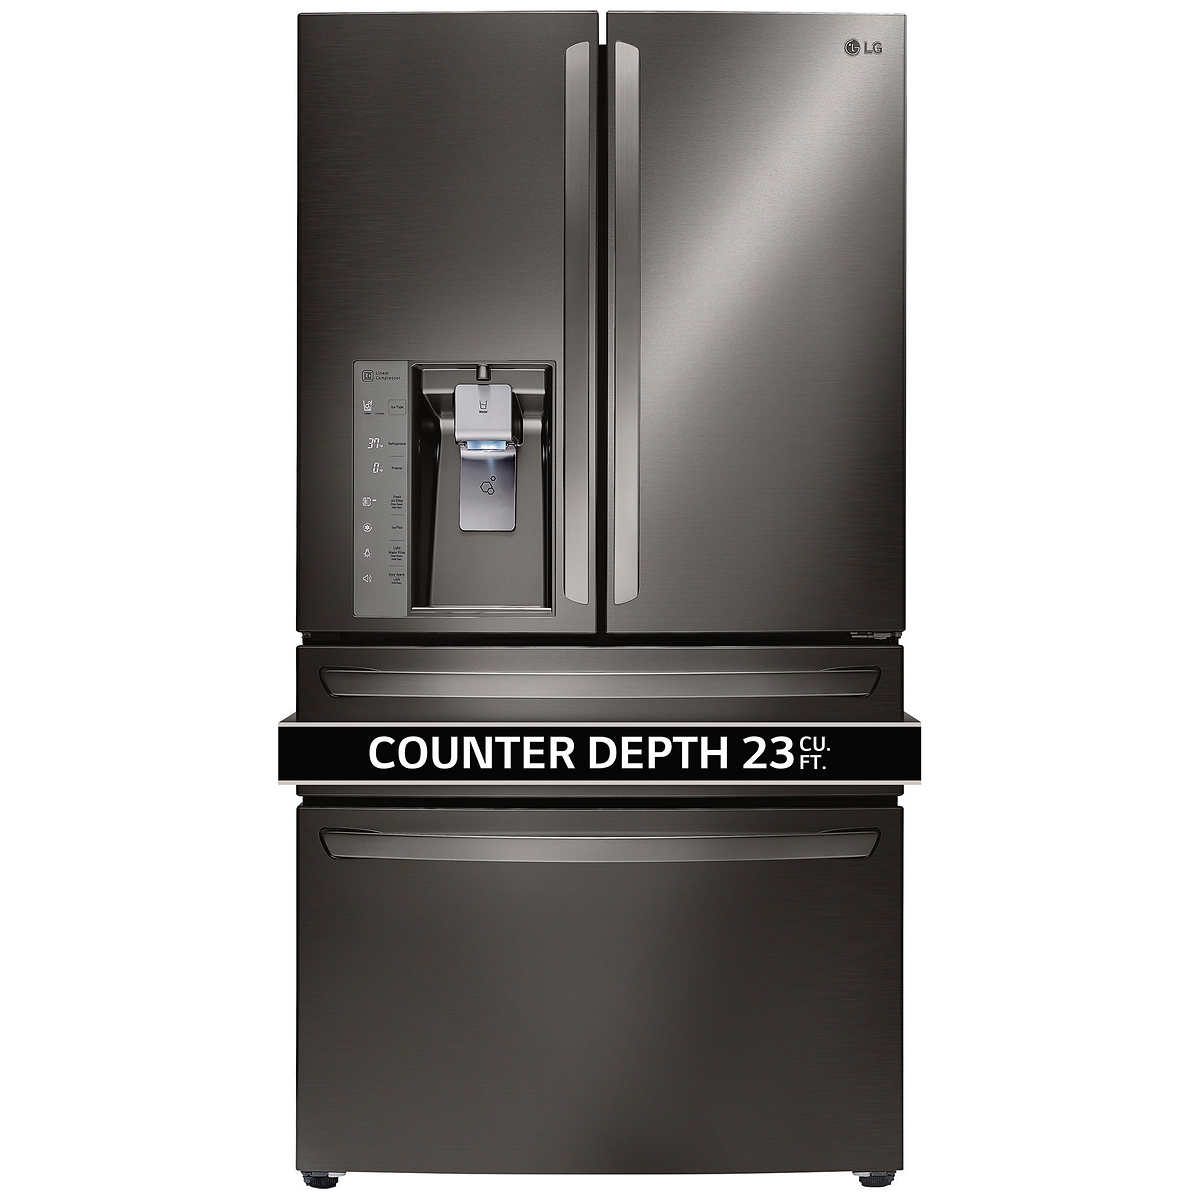 What Is The Depth Of A Counter Depth Refrigerator Lg 23cuft Counter Depth 4 Door French Door Refrigerator In Black